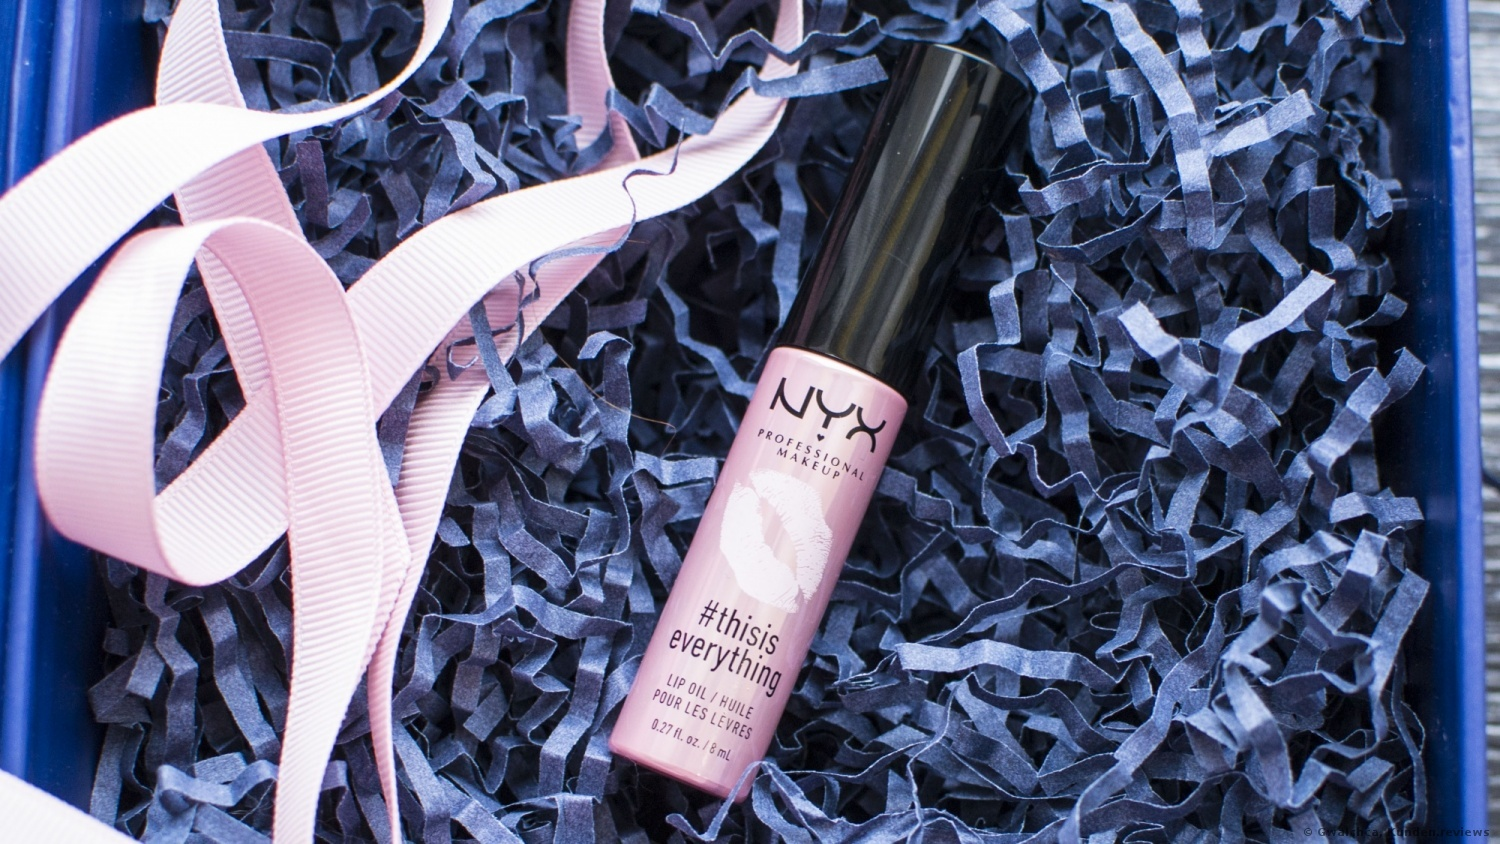 NYX #thisiseverything Lip Oil  Lippenpflege Foto